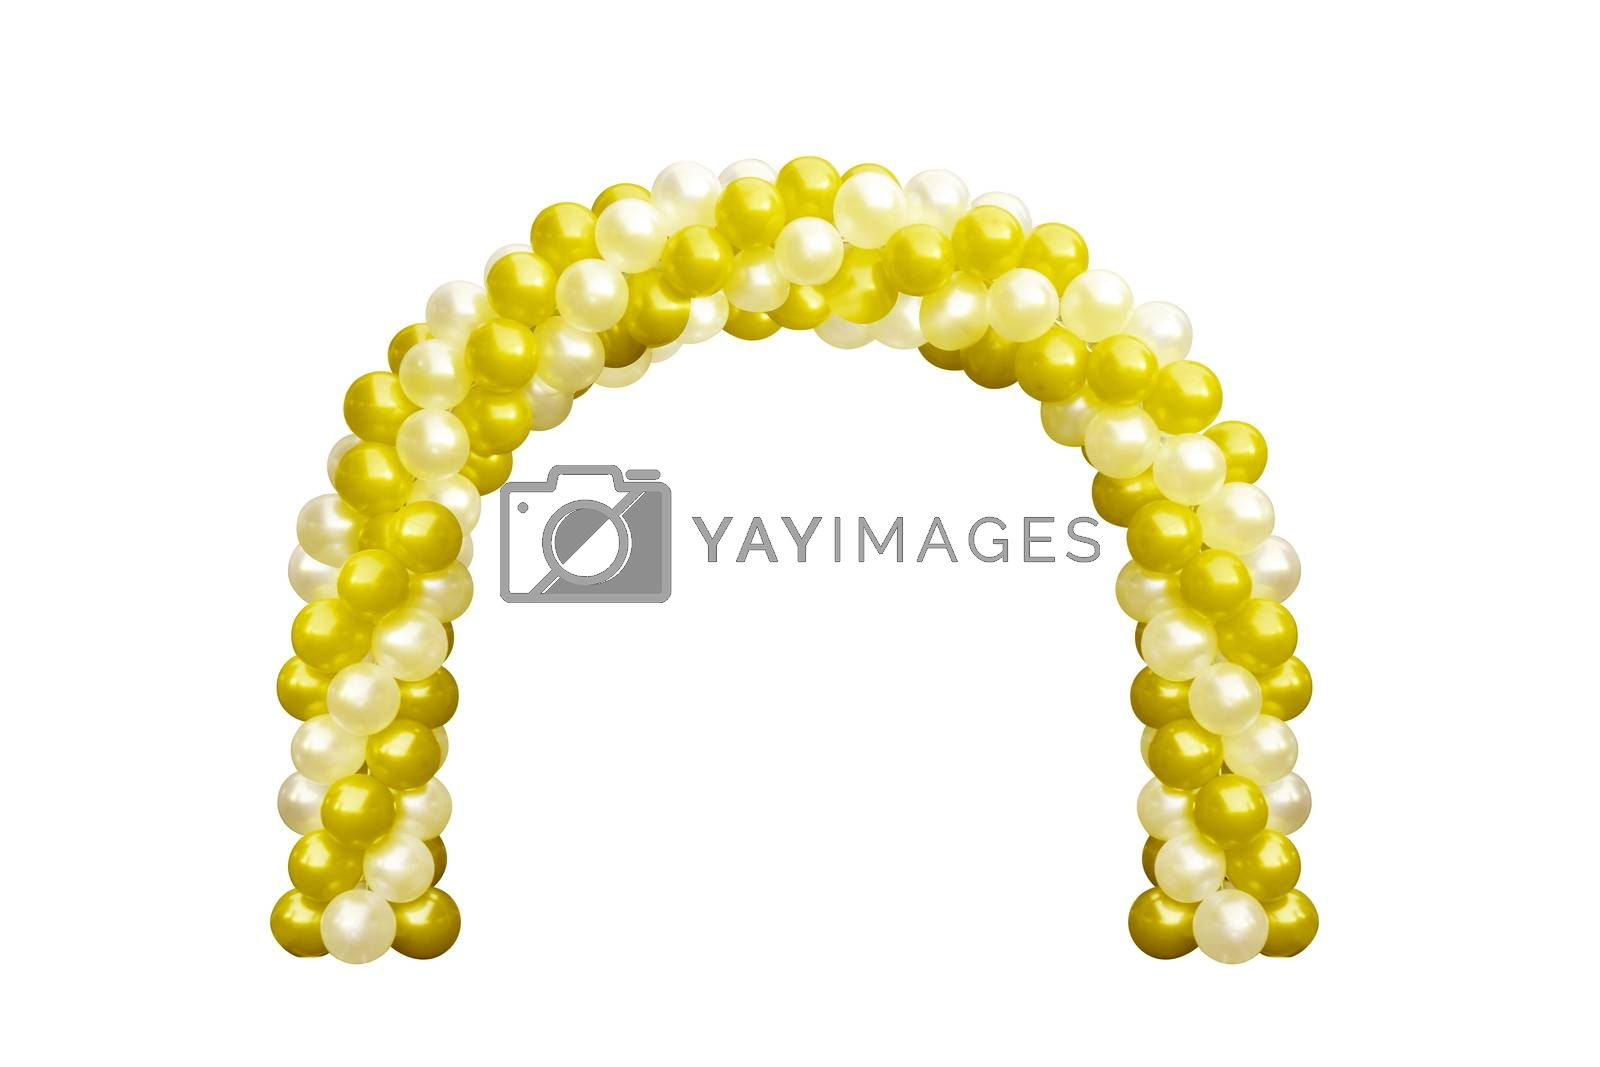 Balloon Archway door Yellow Gold and white, Arches wedding, Balloon Festival design decoration elements with arch floral design isolated on white Background